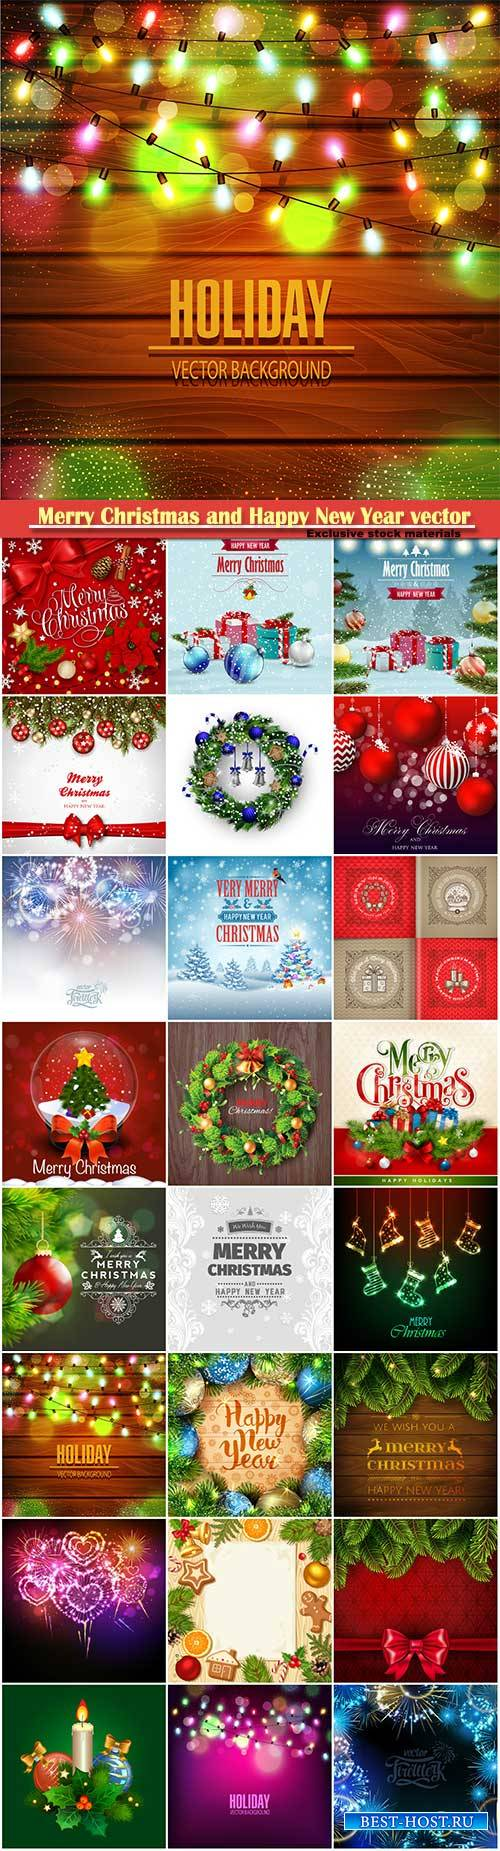 Merry Christmas and Happy New Year vector design # 19